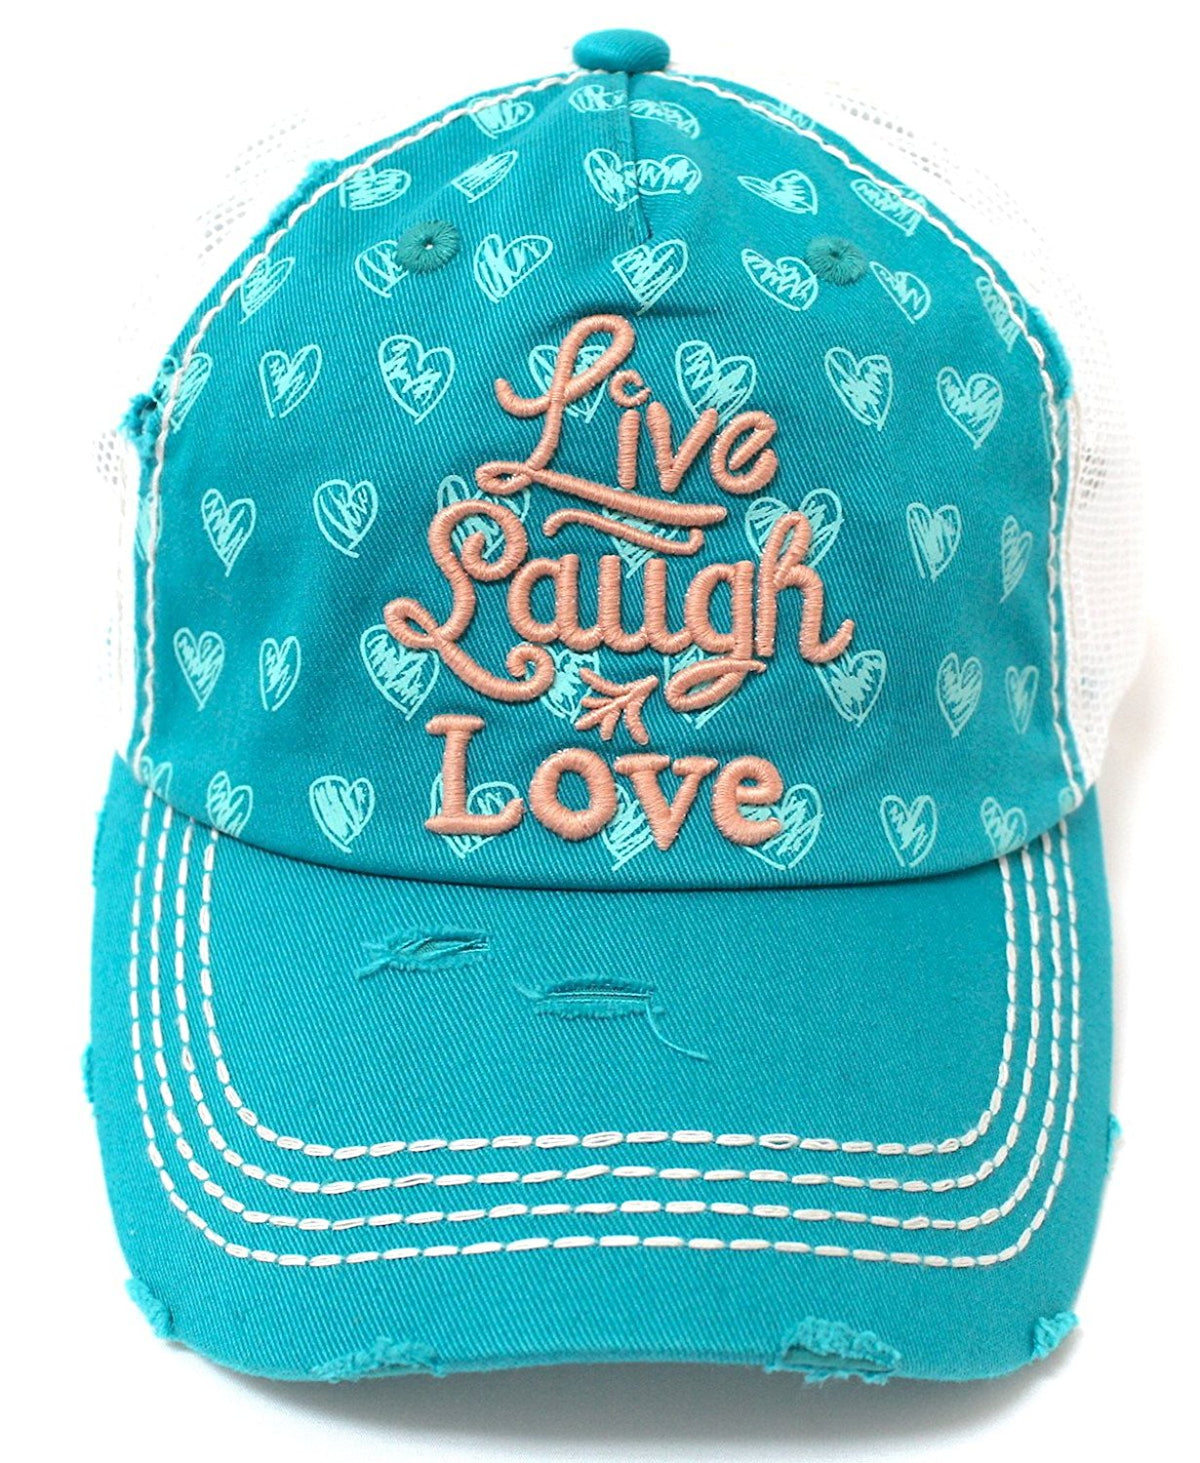 Women's Live, Laugh, Love hearts Pattern Meshback Hat-Turquoise - Caps 'N Vintage